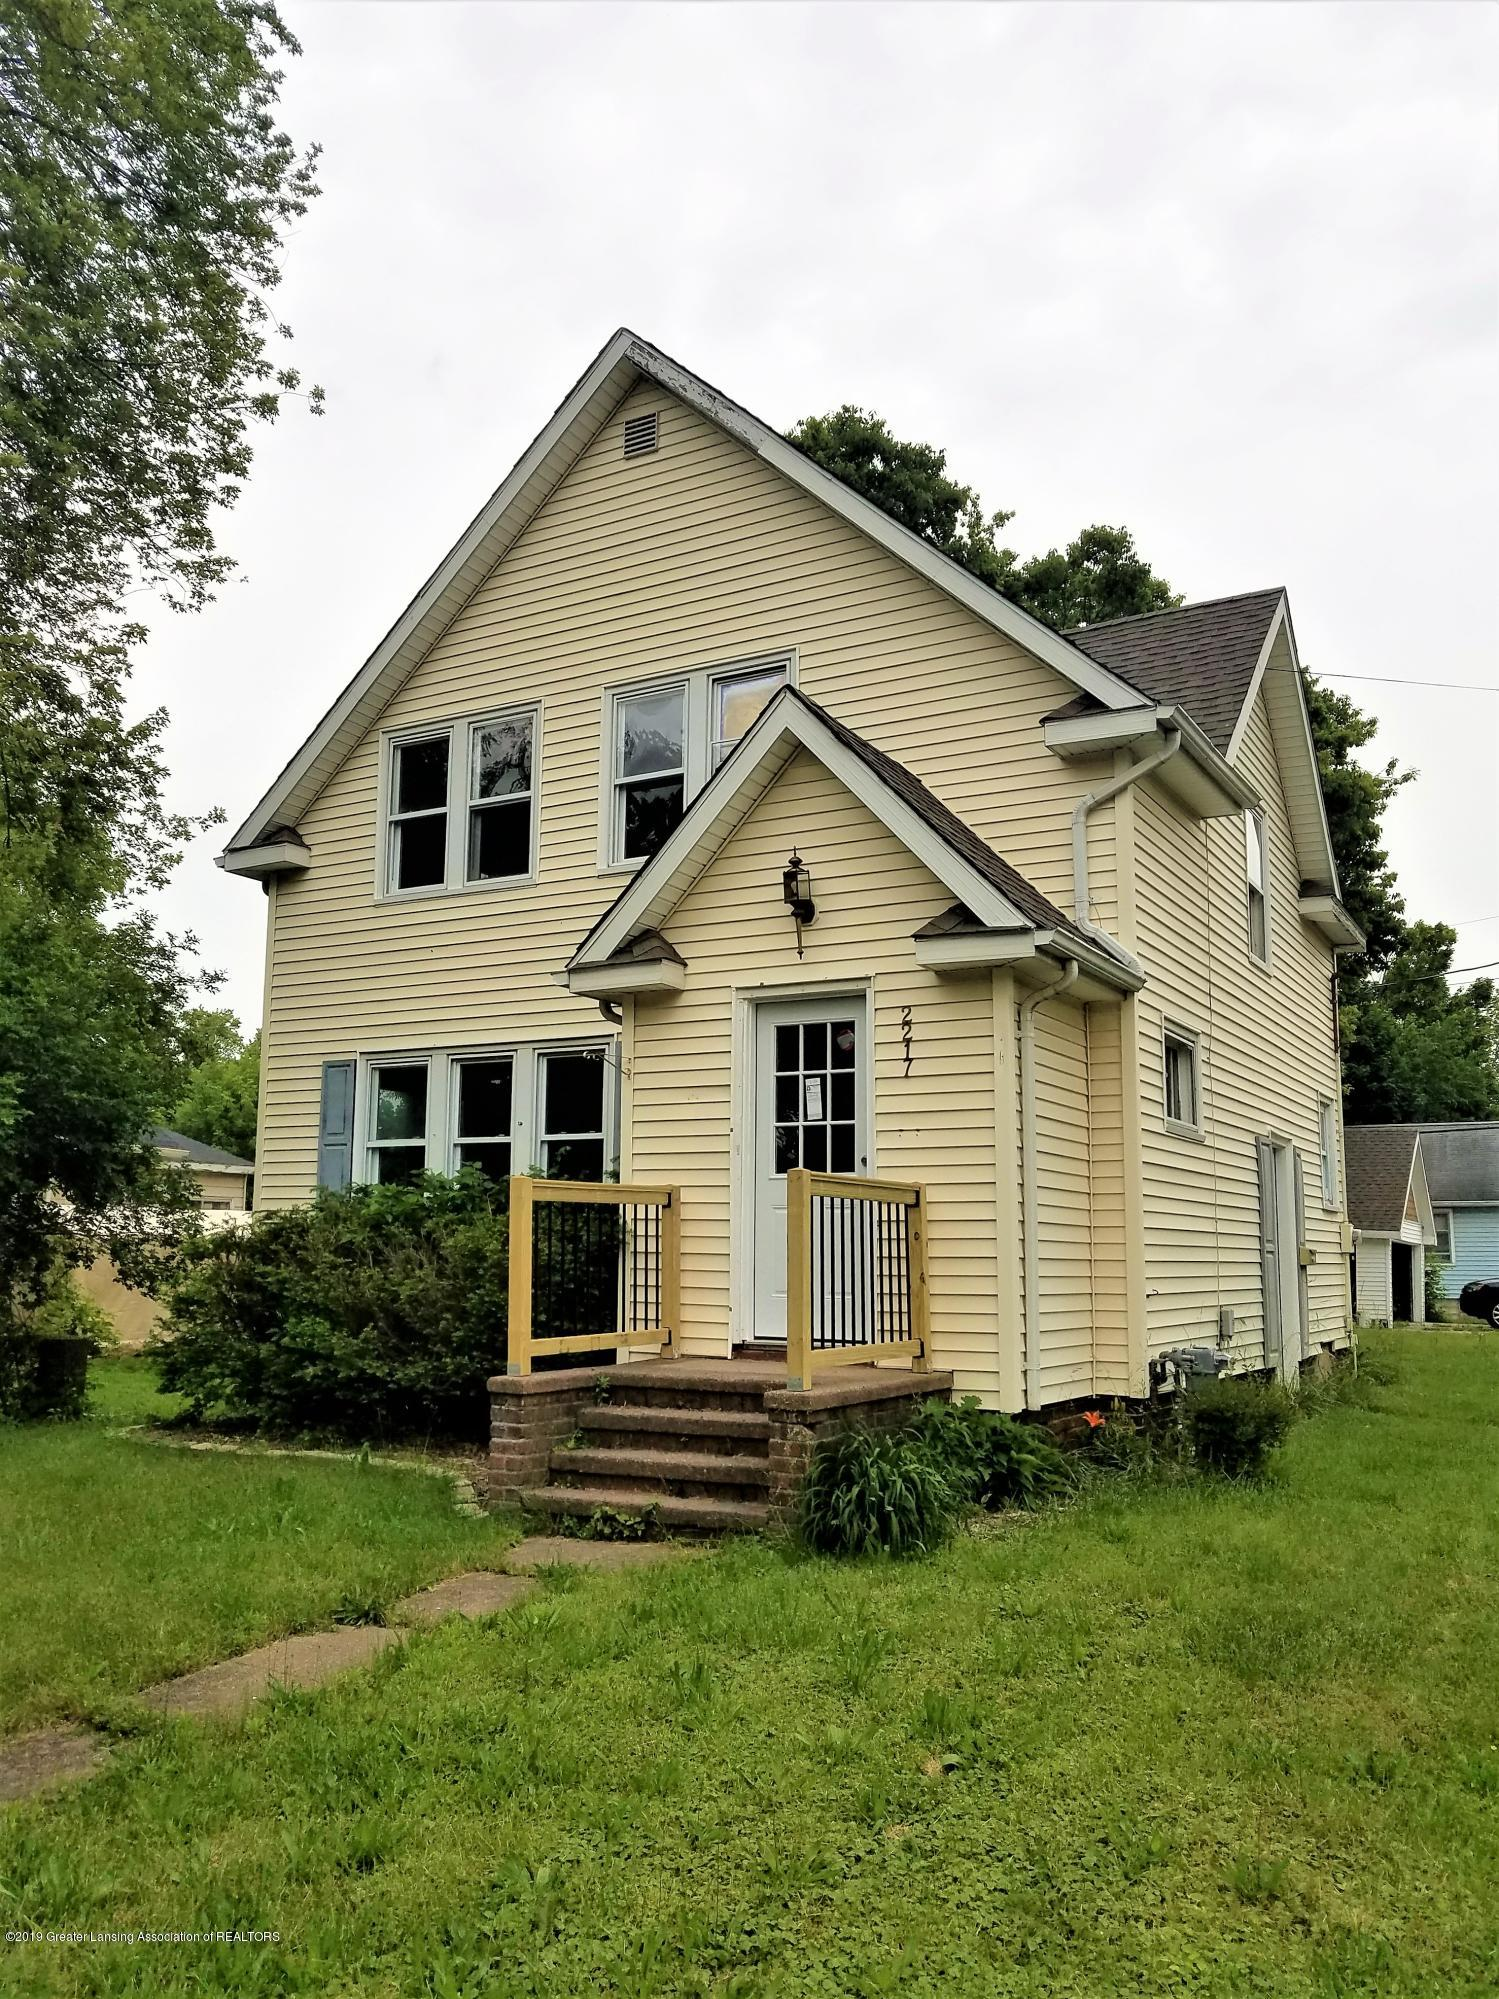 2217 S Rundle Ave - 20190614_132405 - 2